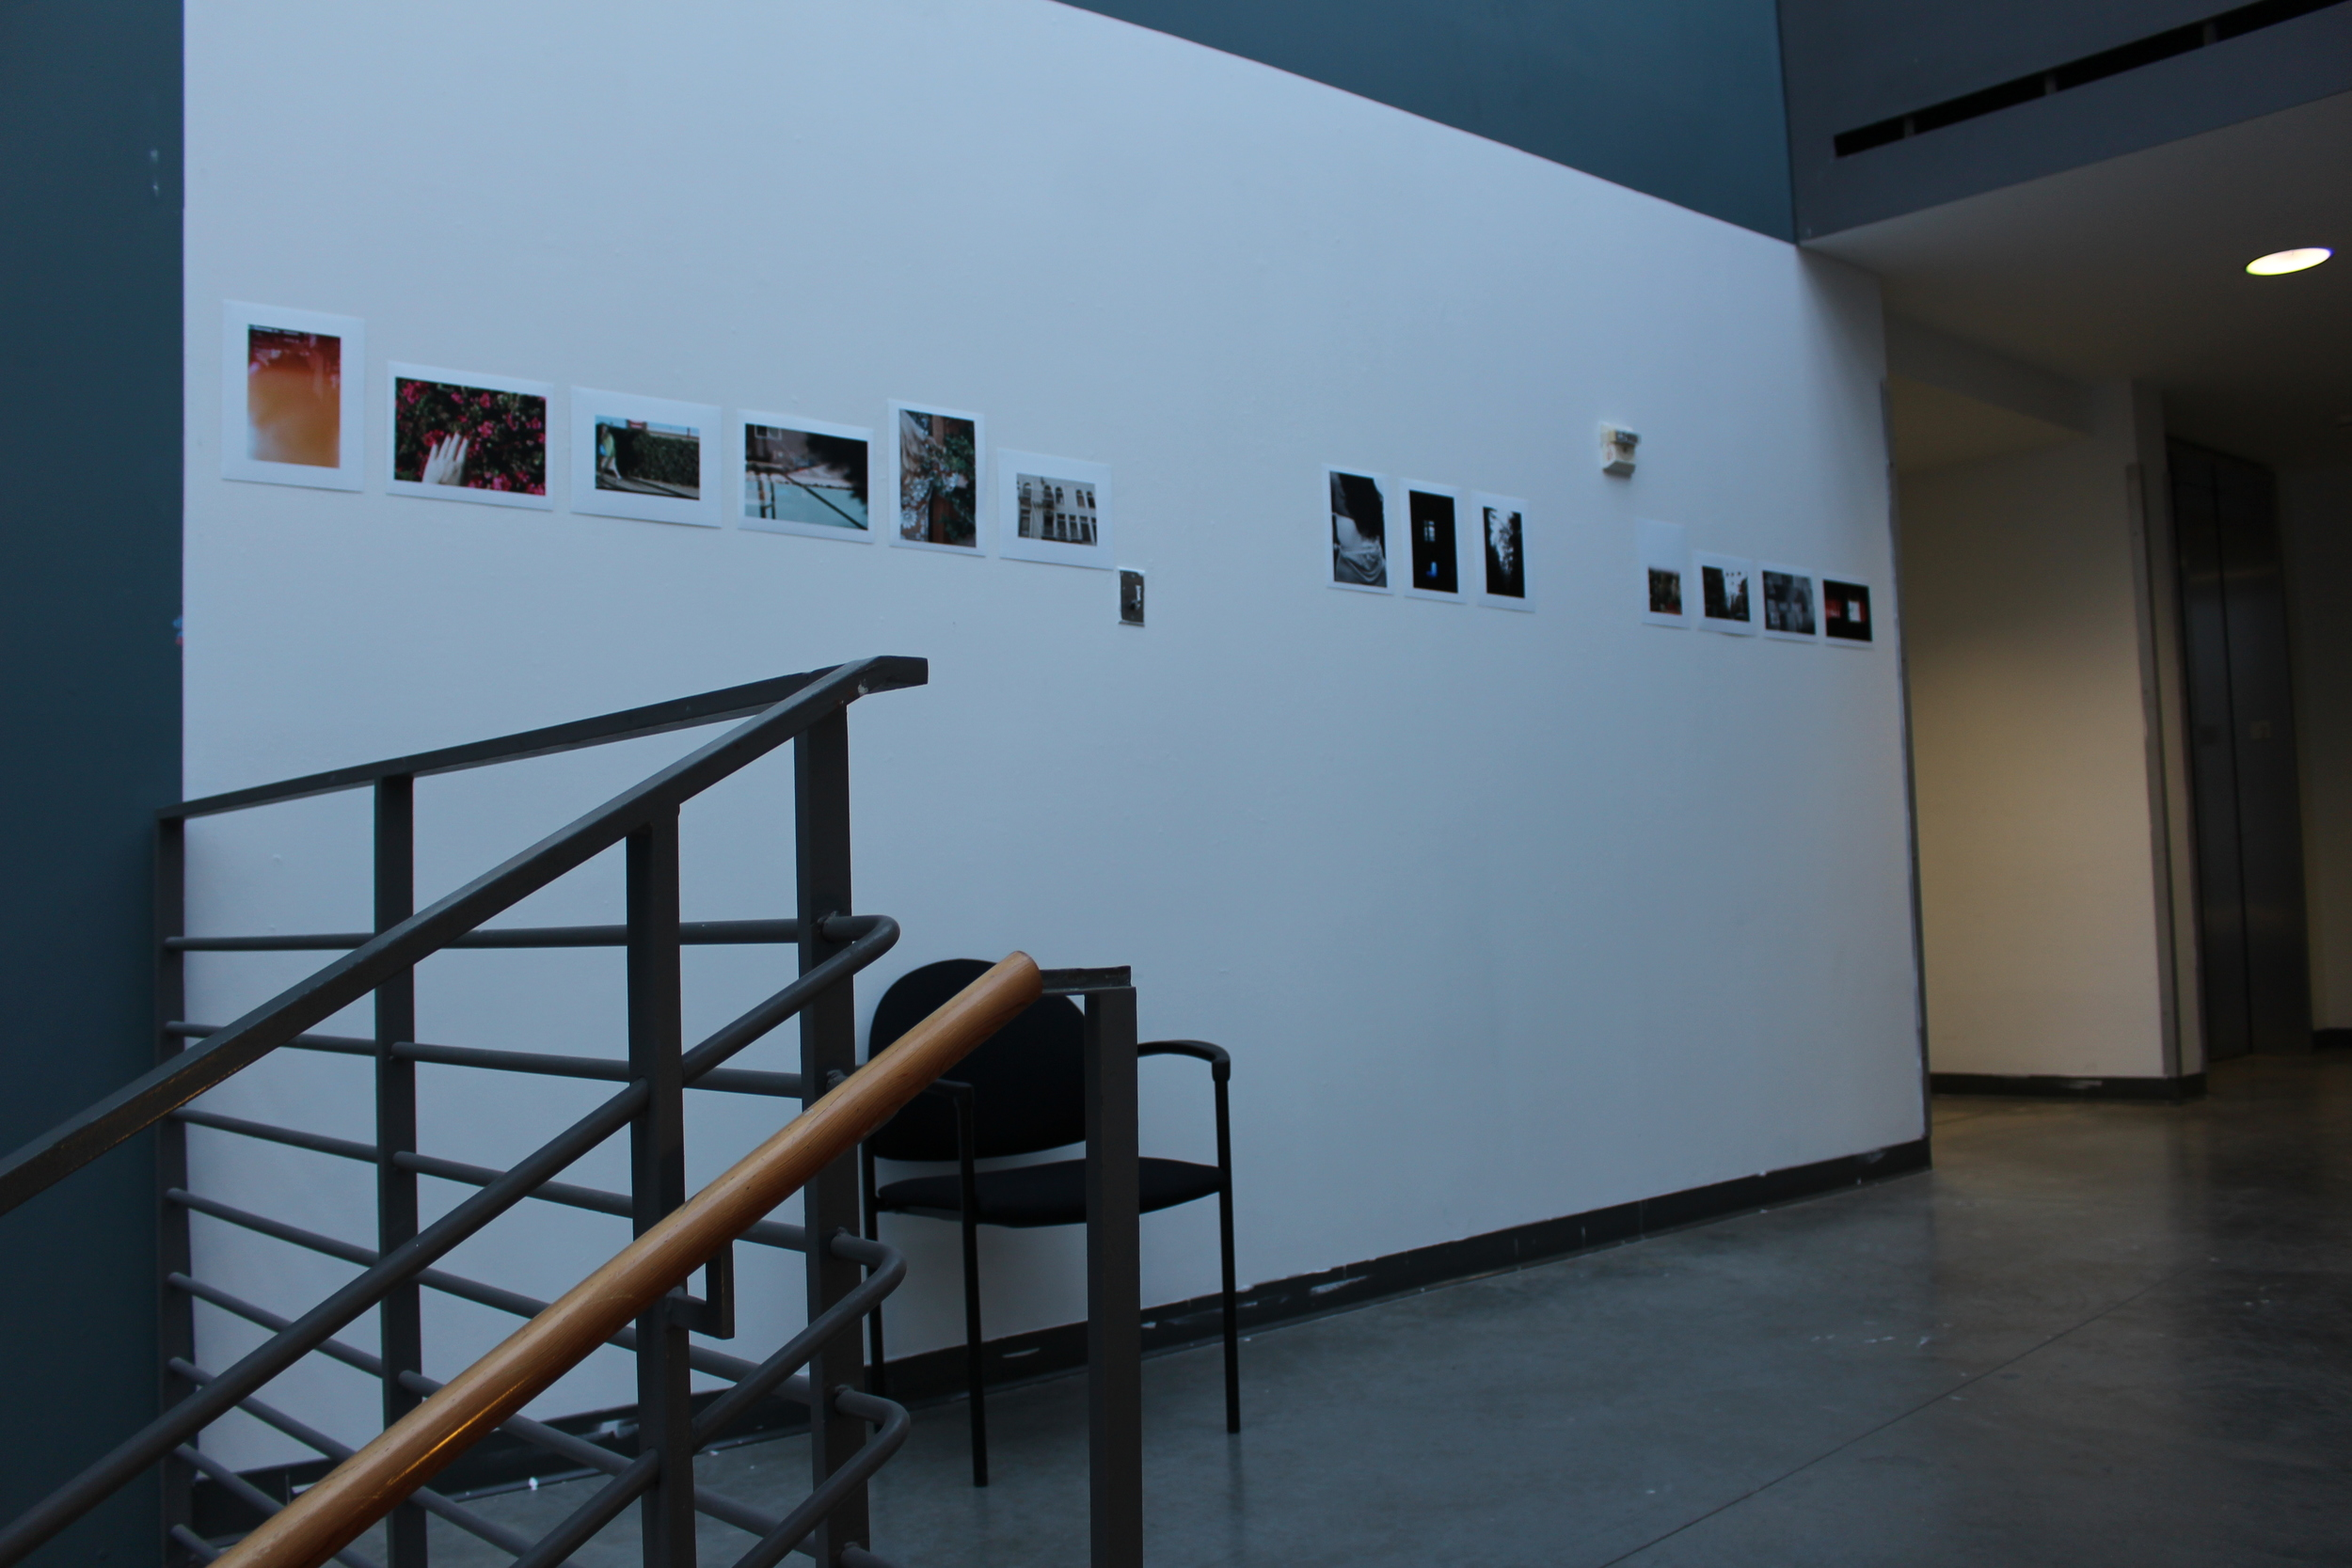 Photographs by Emily Alben hung on the floor above the Atrium